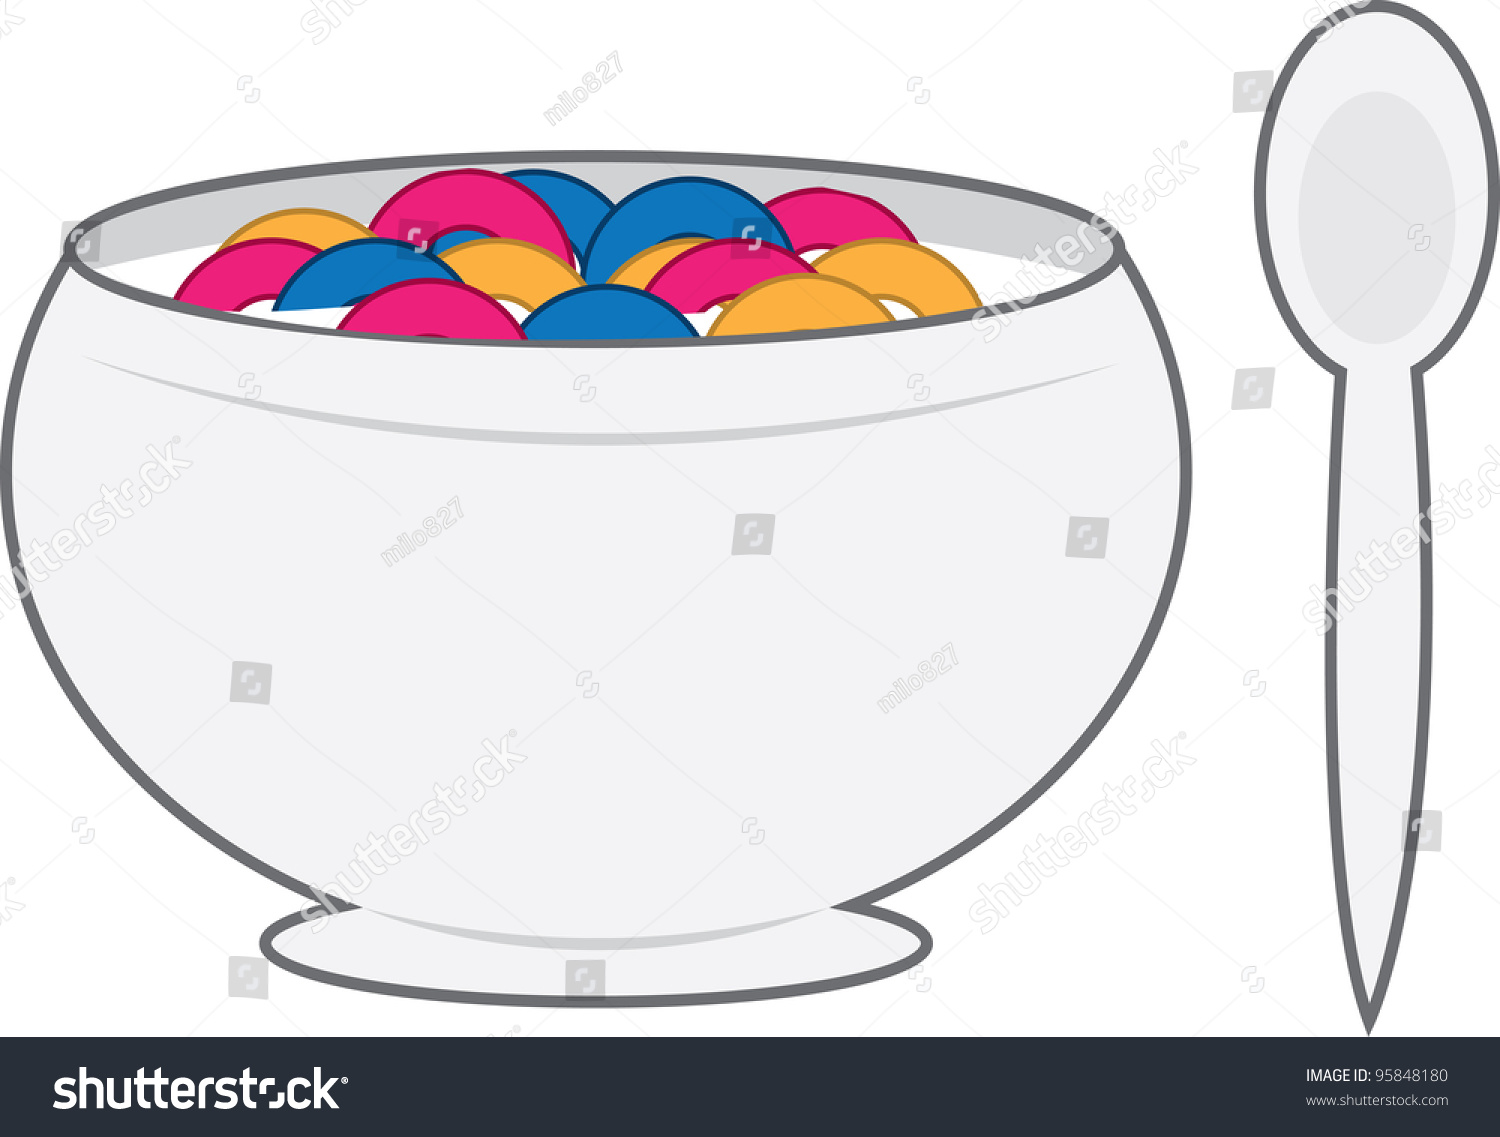 1500x1137 Bowl Clipart Bowl Milk